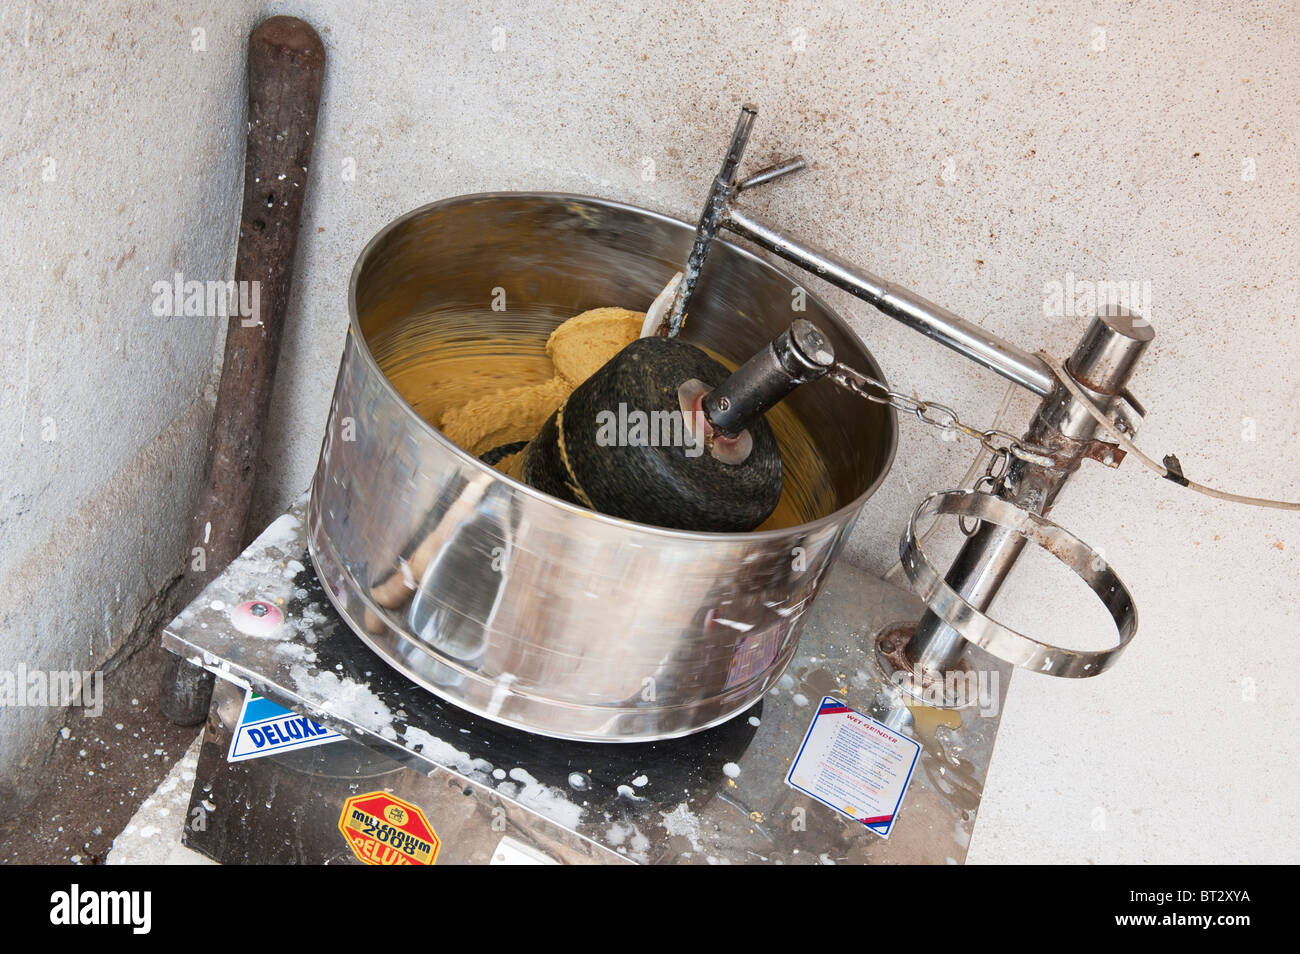 Motorized grinder by an indian house grinding dal and jaggery for preparation of indian sweets at festival time. - Stock Image